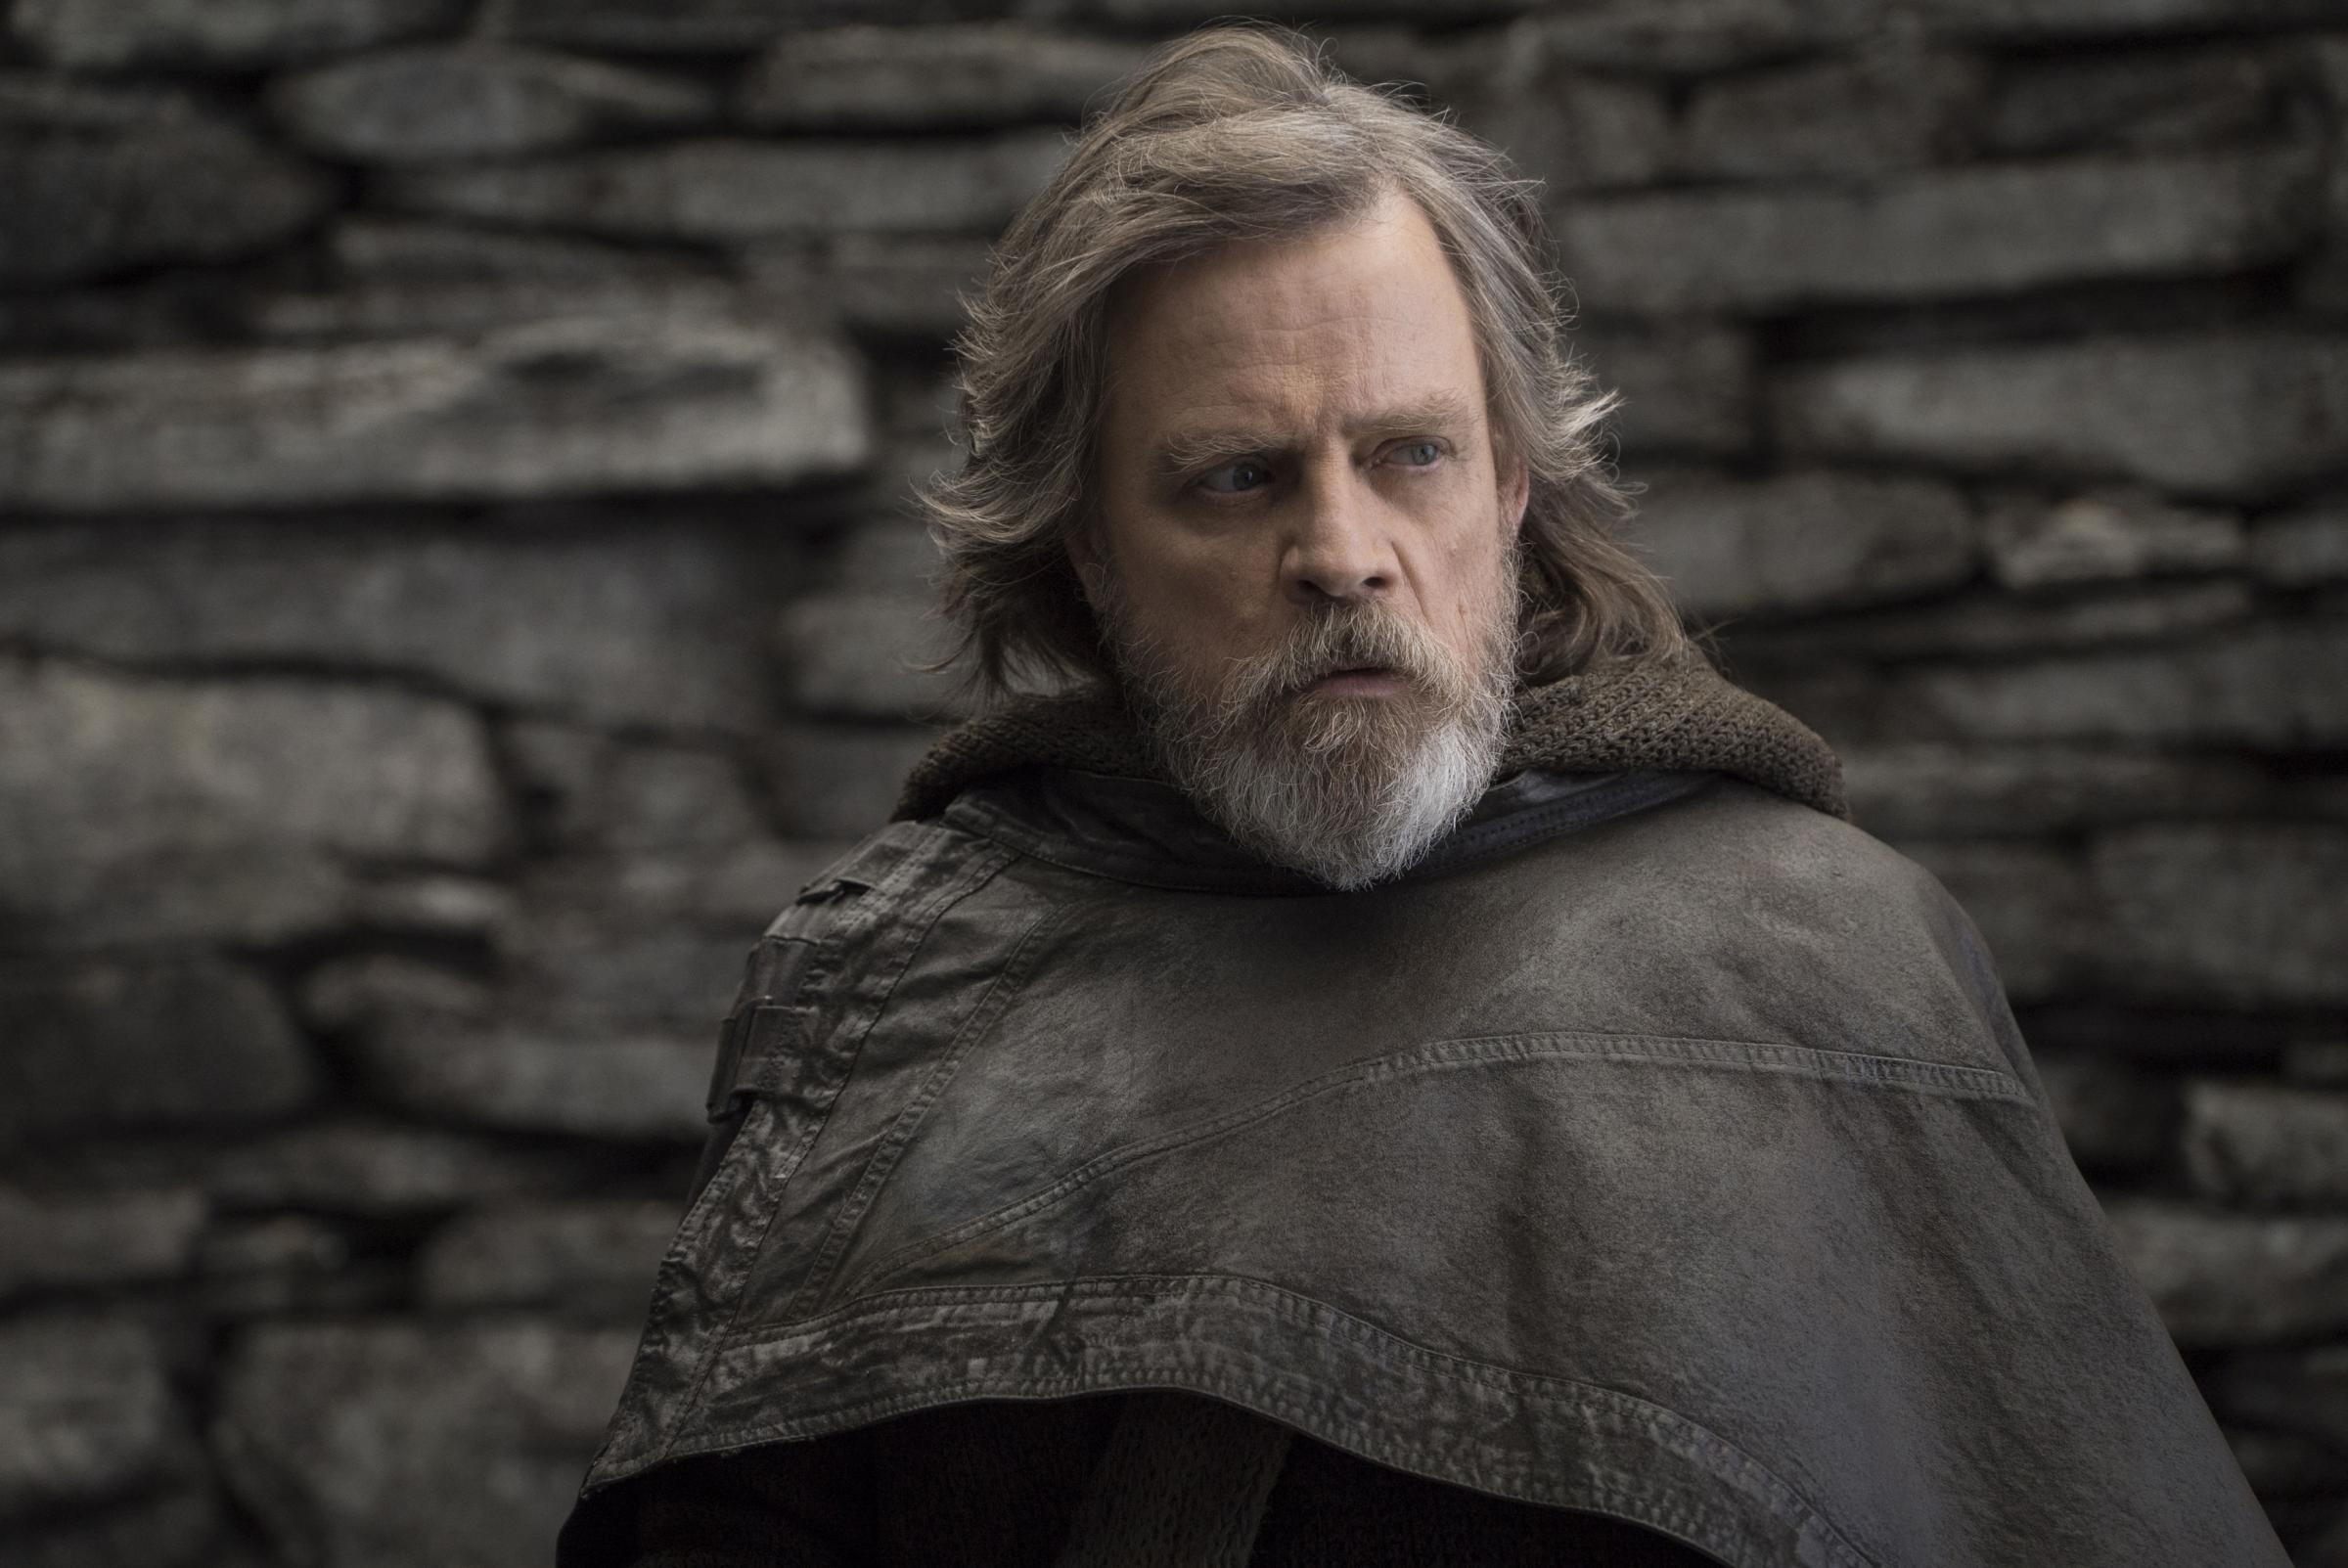 Ever wanted to be a film or TV extra? Date for open casting for company behind Star Wars: The Last Jedi